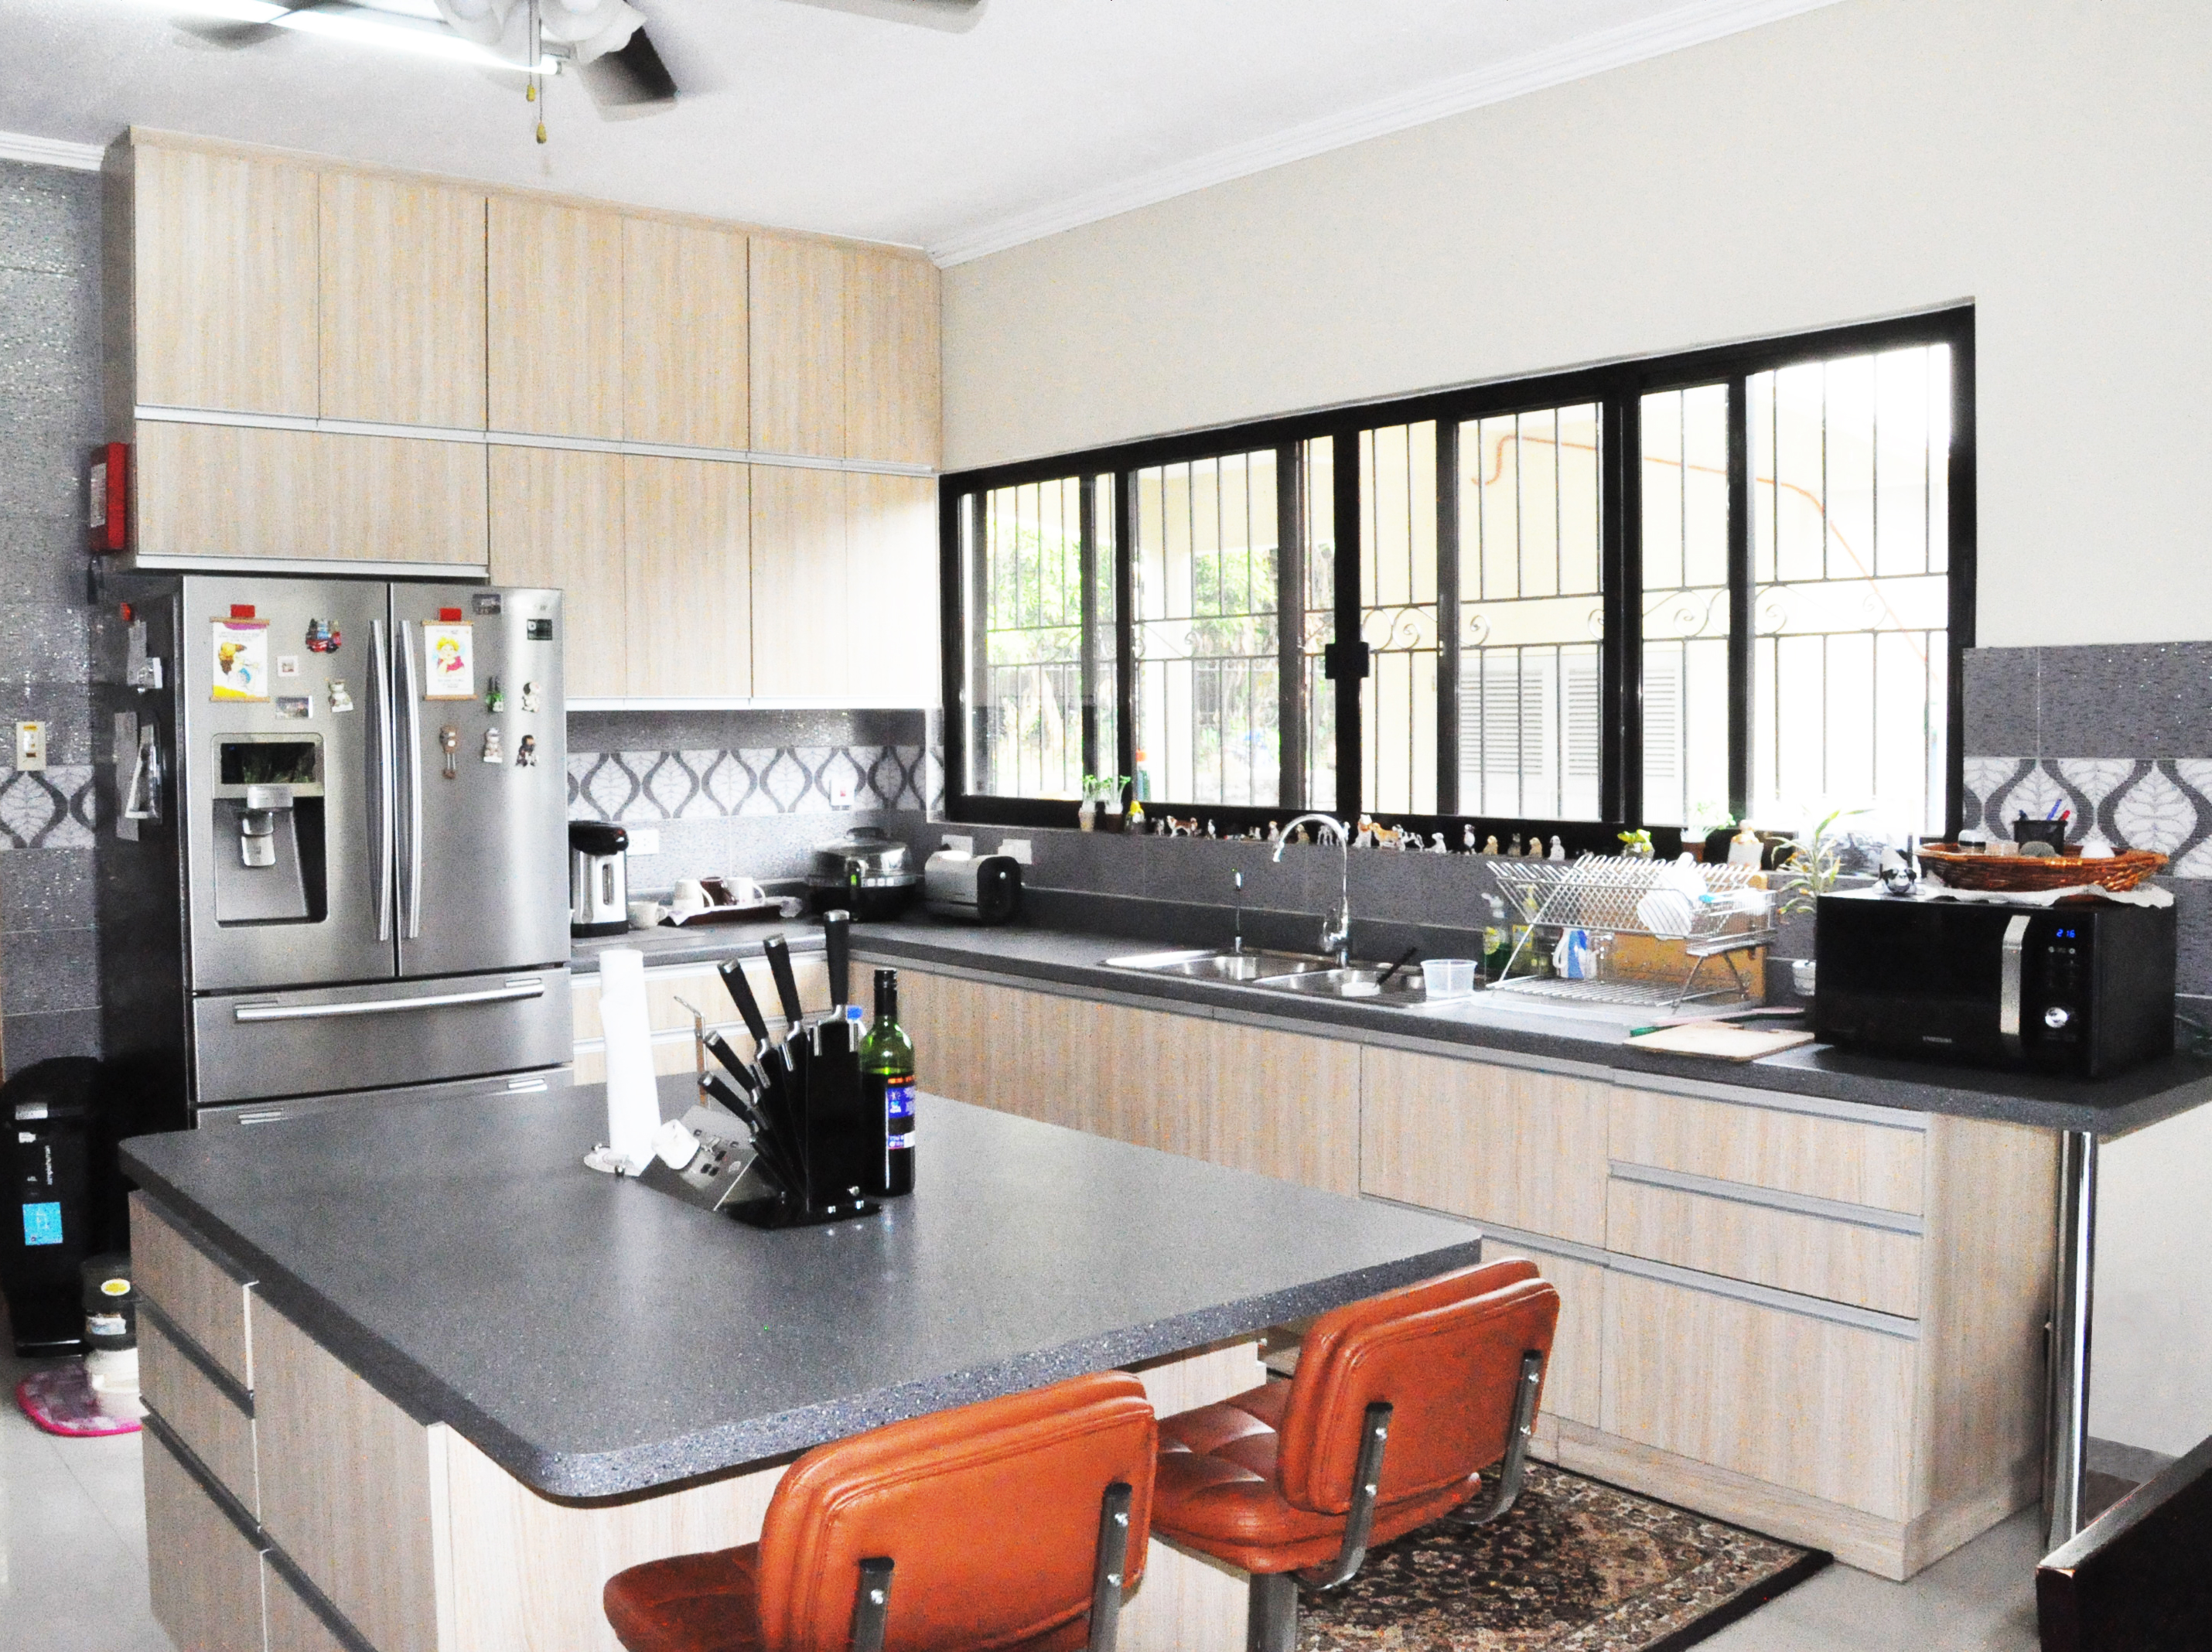 Modular Kitchen Upper Cabinets San Jose Kitchen Cabinets